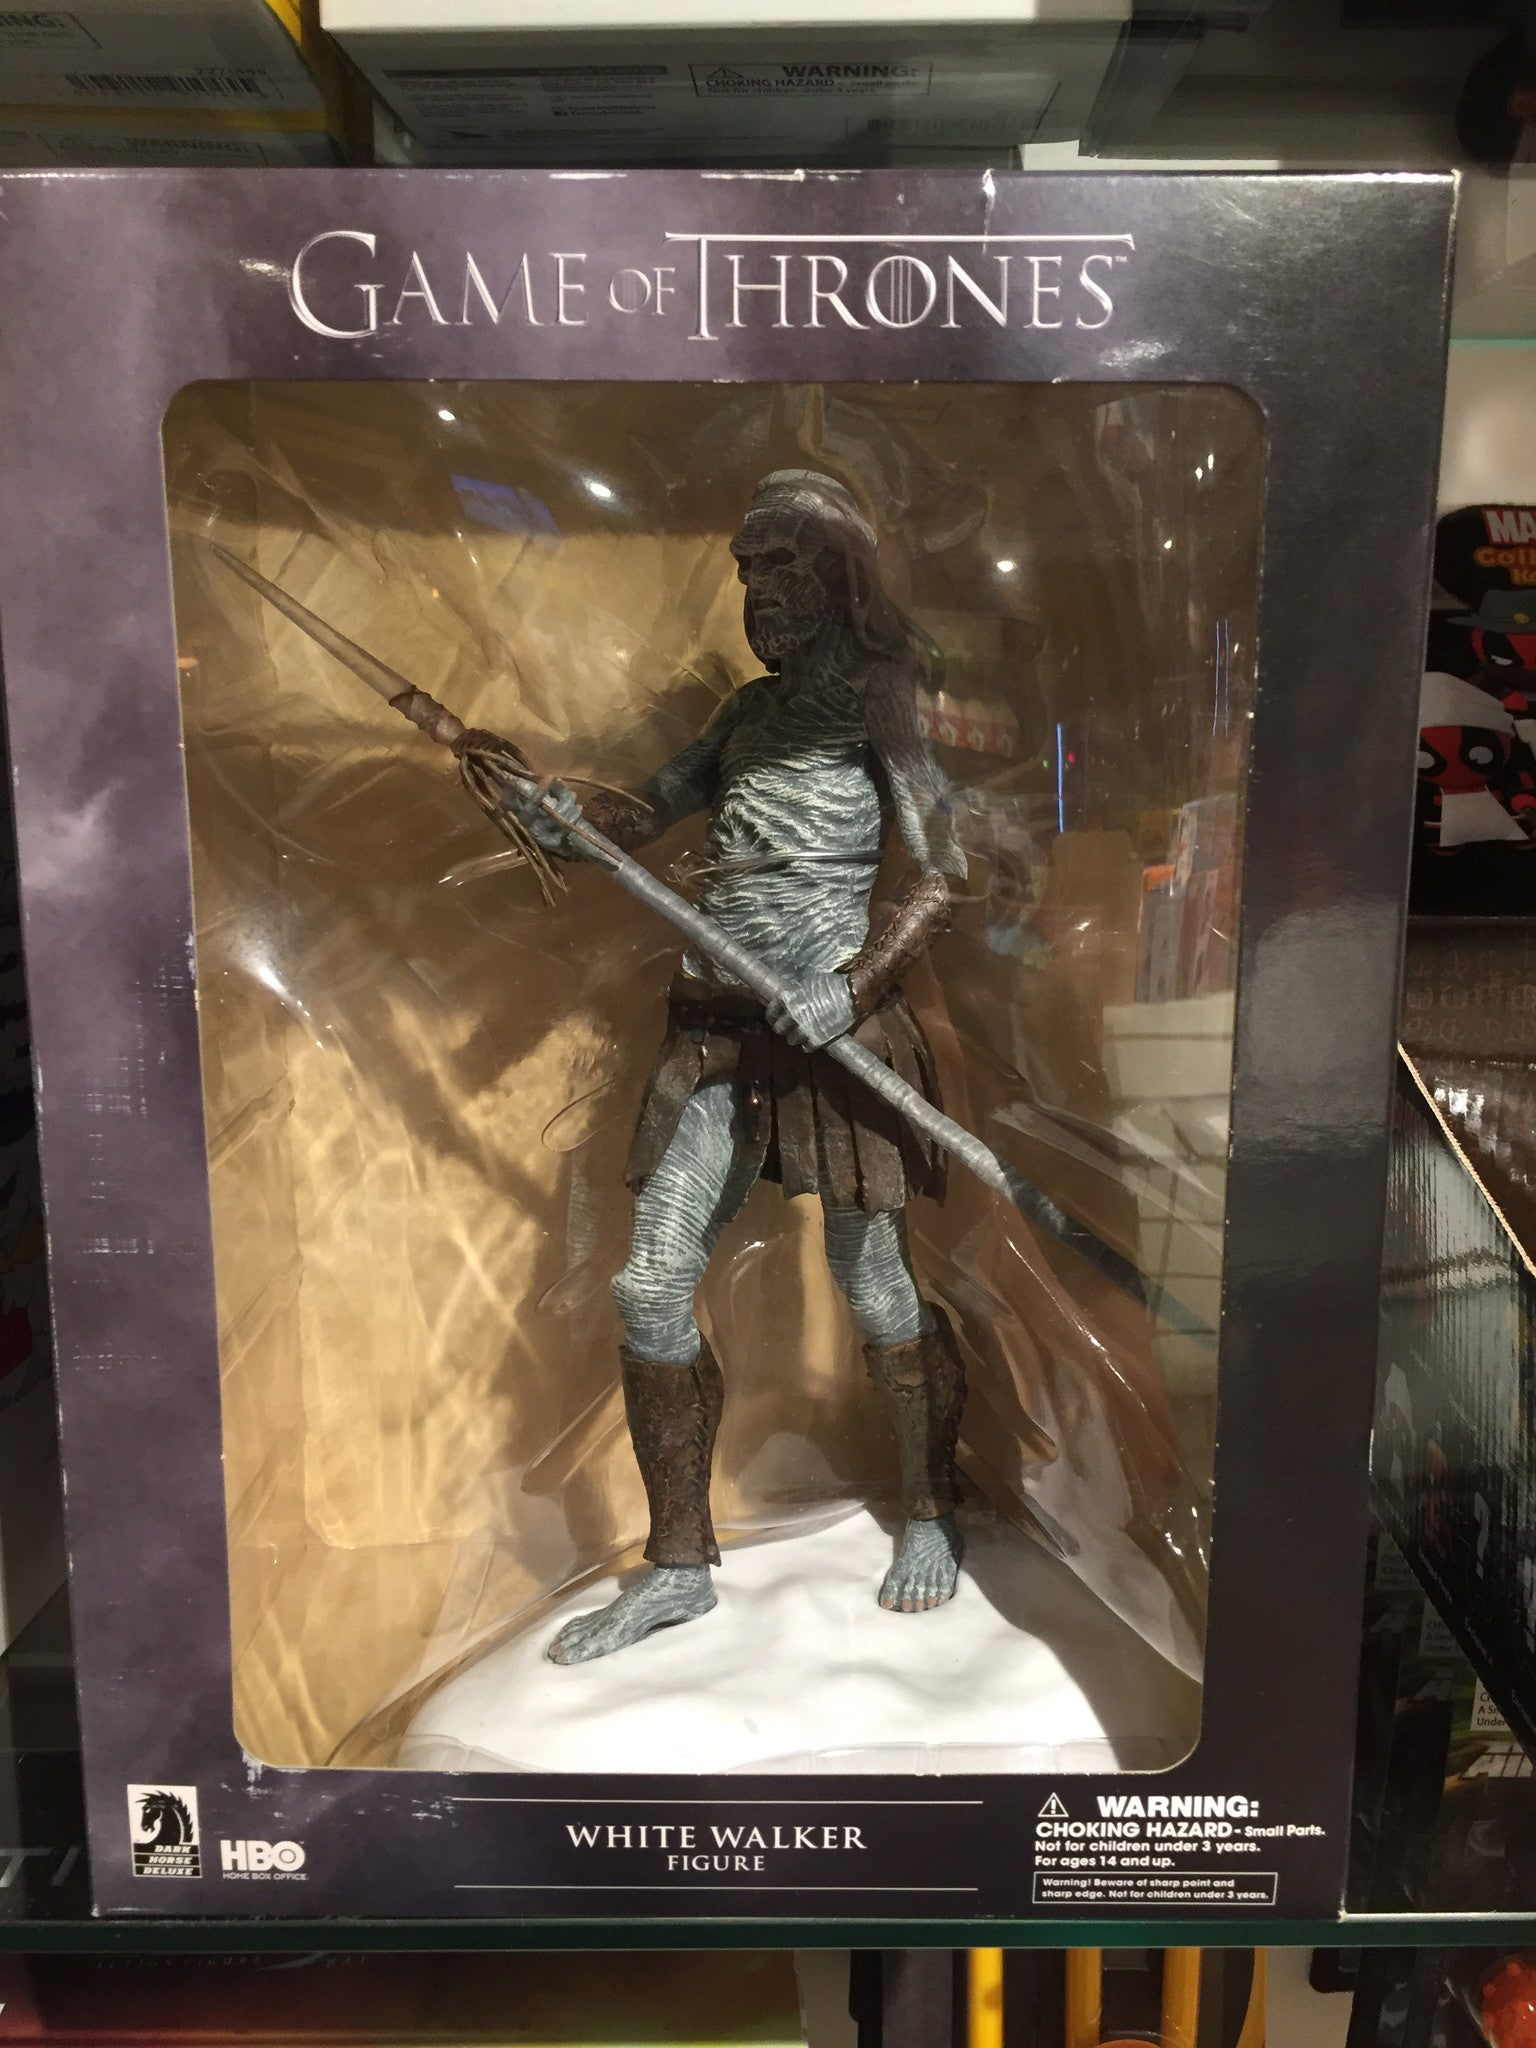 HBO's Game of Thrones: White Walker Figure